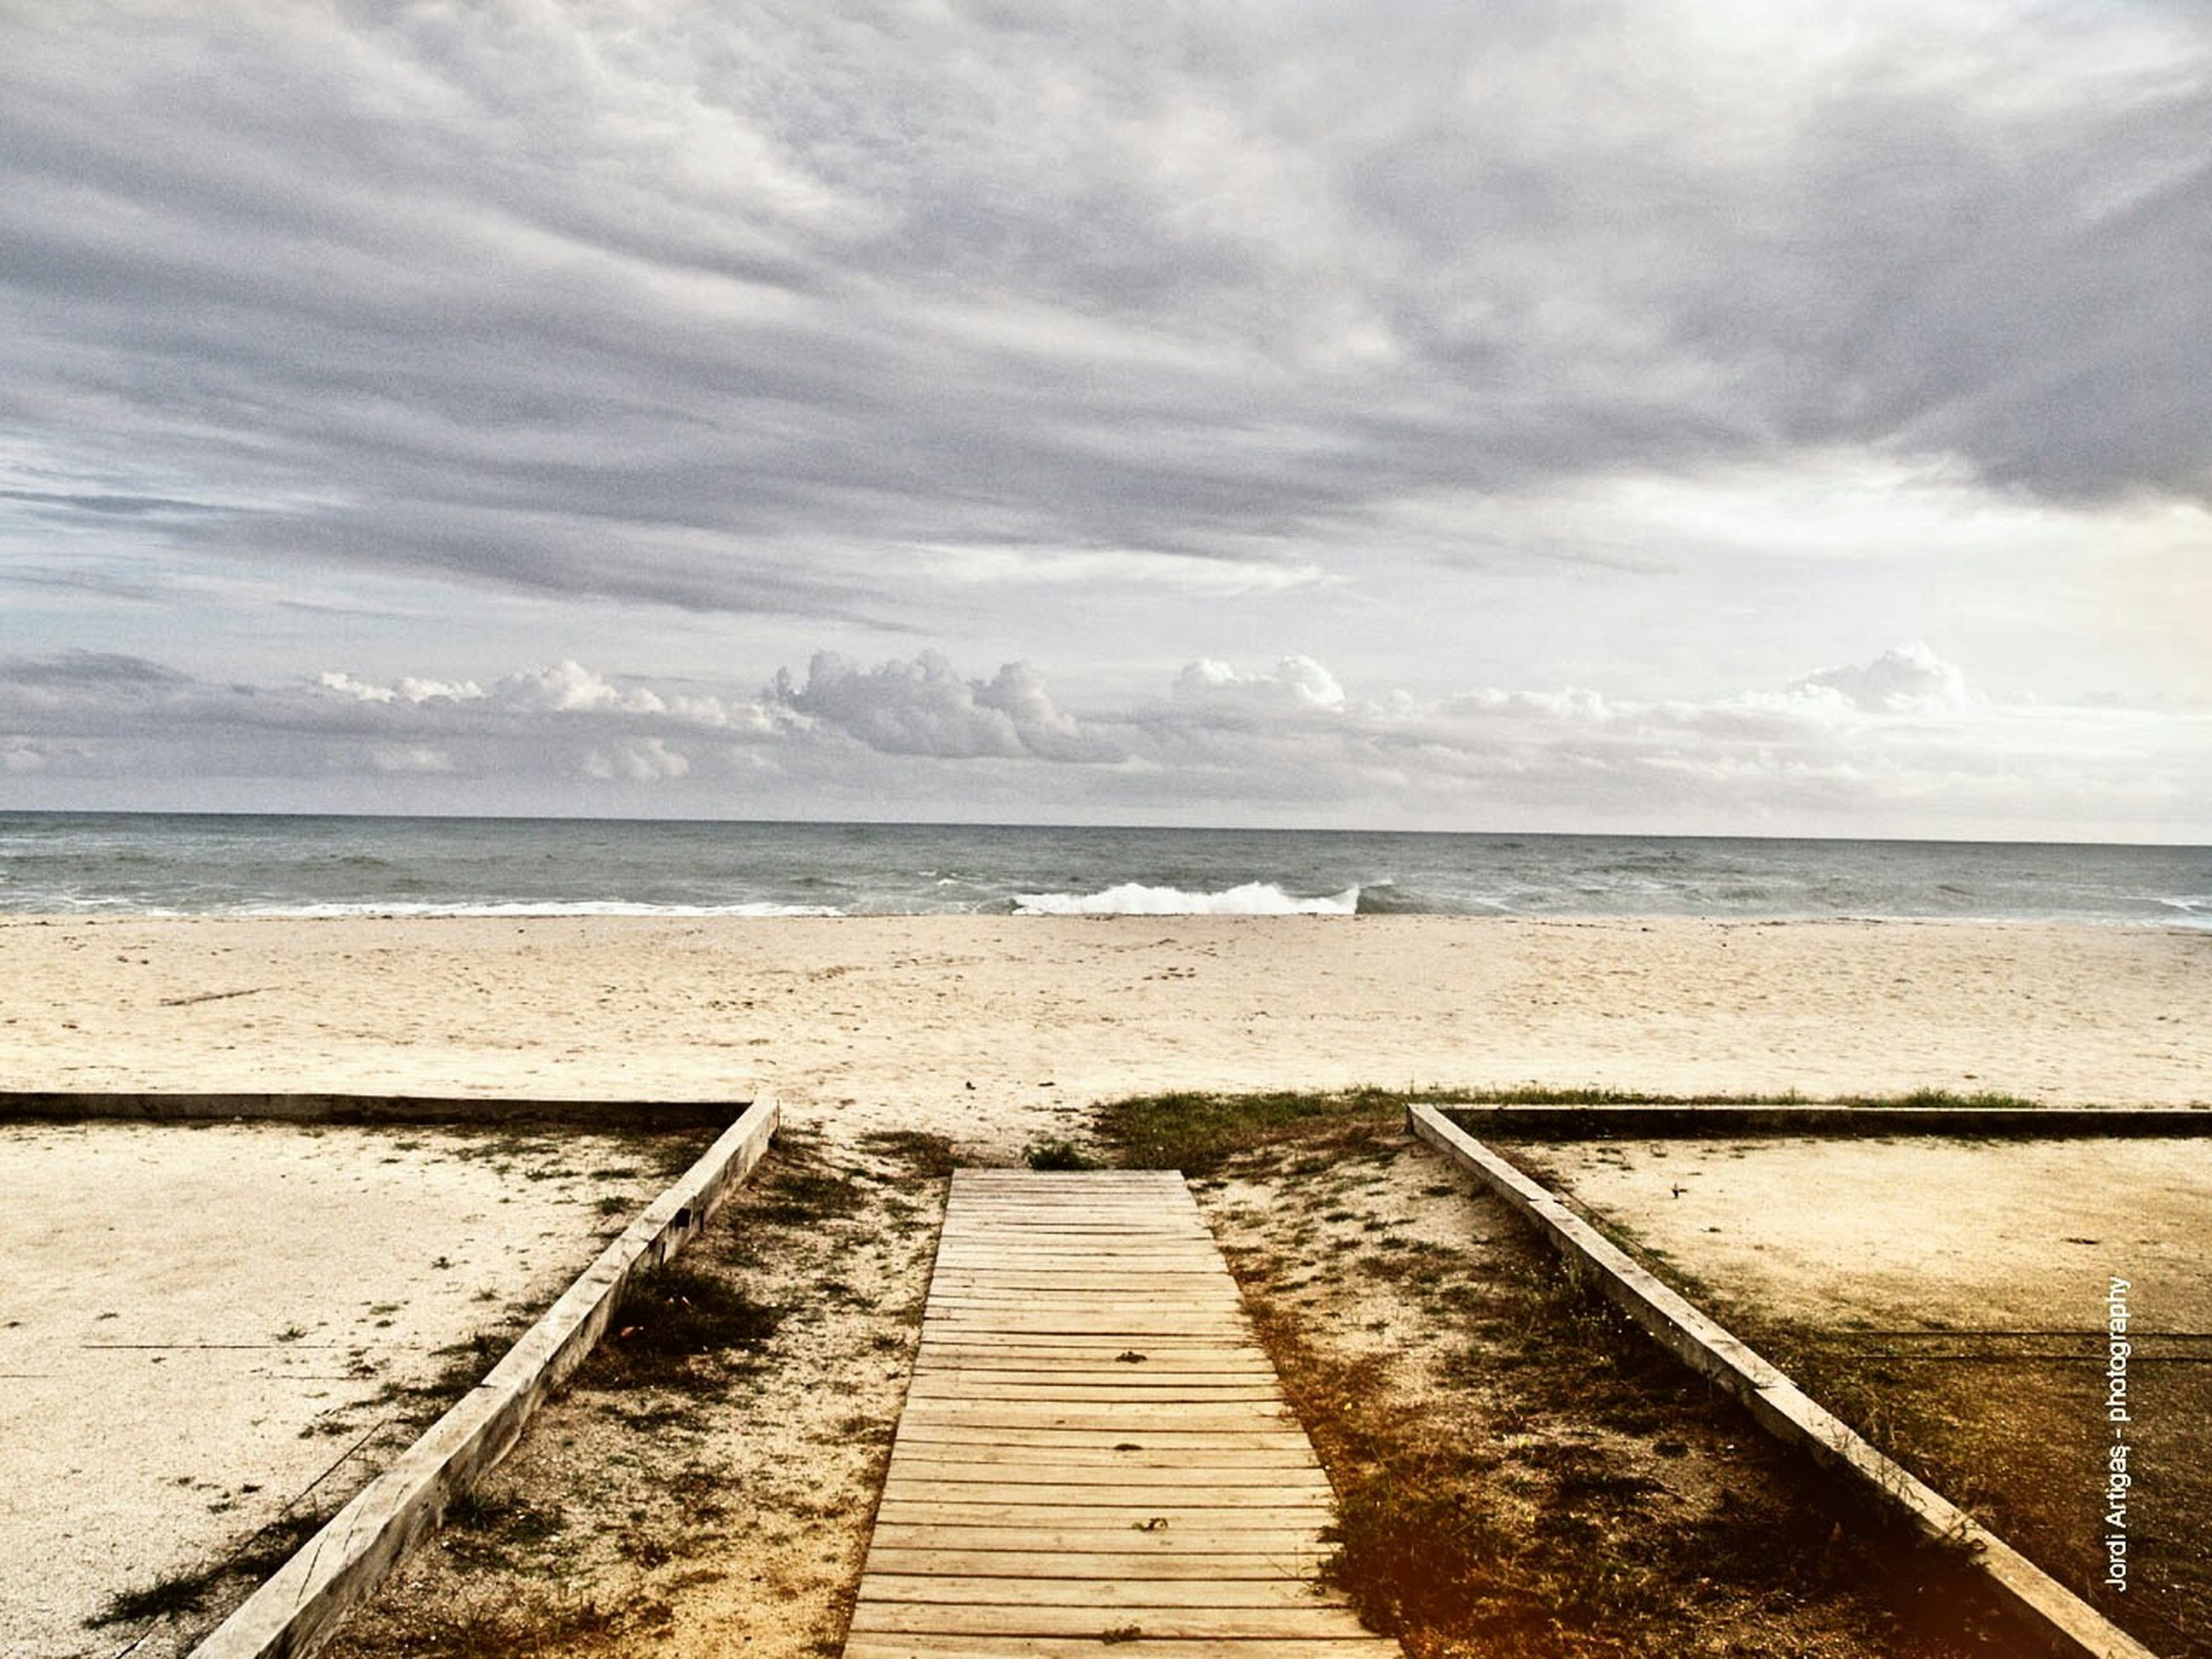 sea, horizon over water, water, beach, boardwalk, the way forward, tranquility, tranquil scene, sky, scenics, beauty in nature, summer, pier, vacations, idyllic, nature, cloud, coastline, cloud - sky, ocean, calm, shore, seascape, tourism, day, majestic, jetty, tide, cloudscape, no people